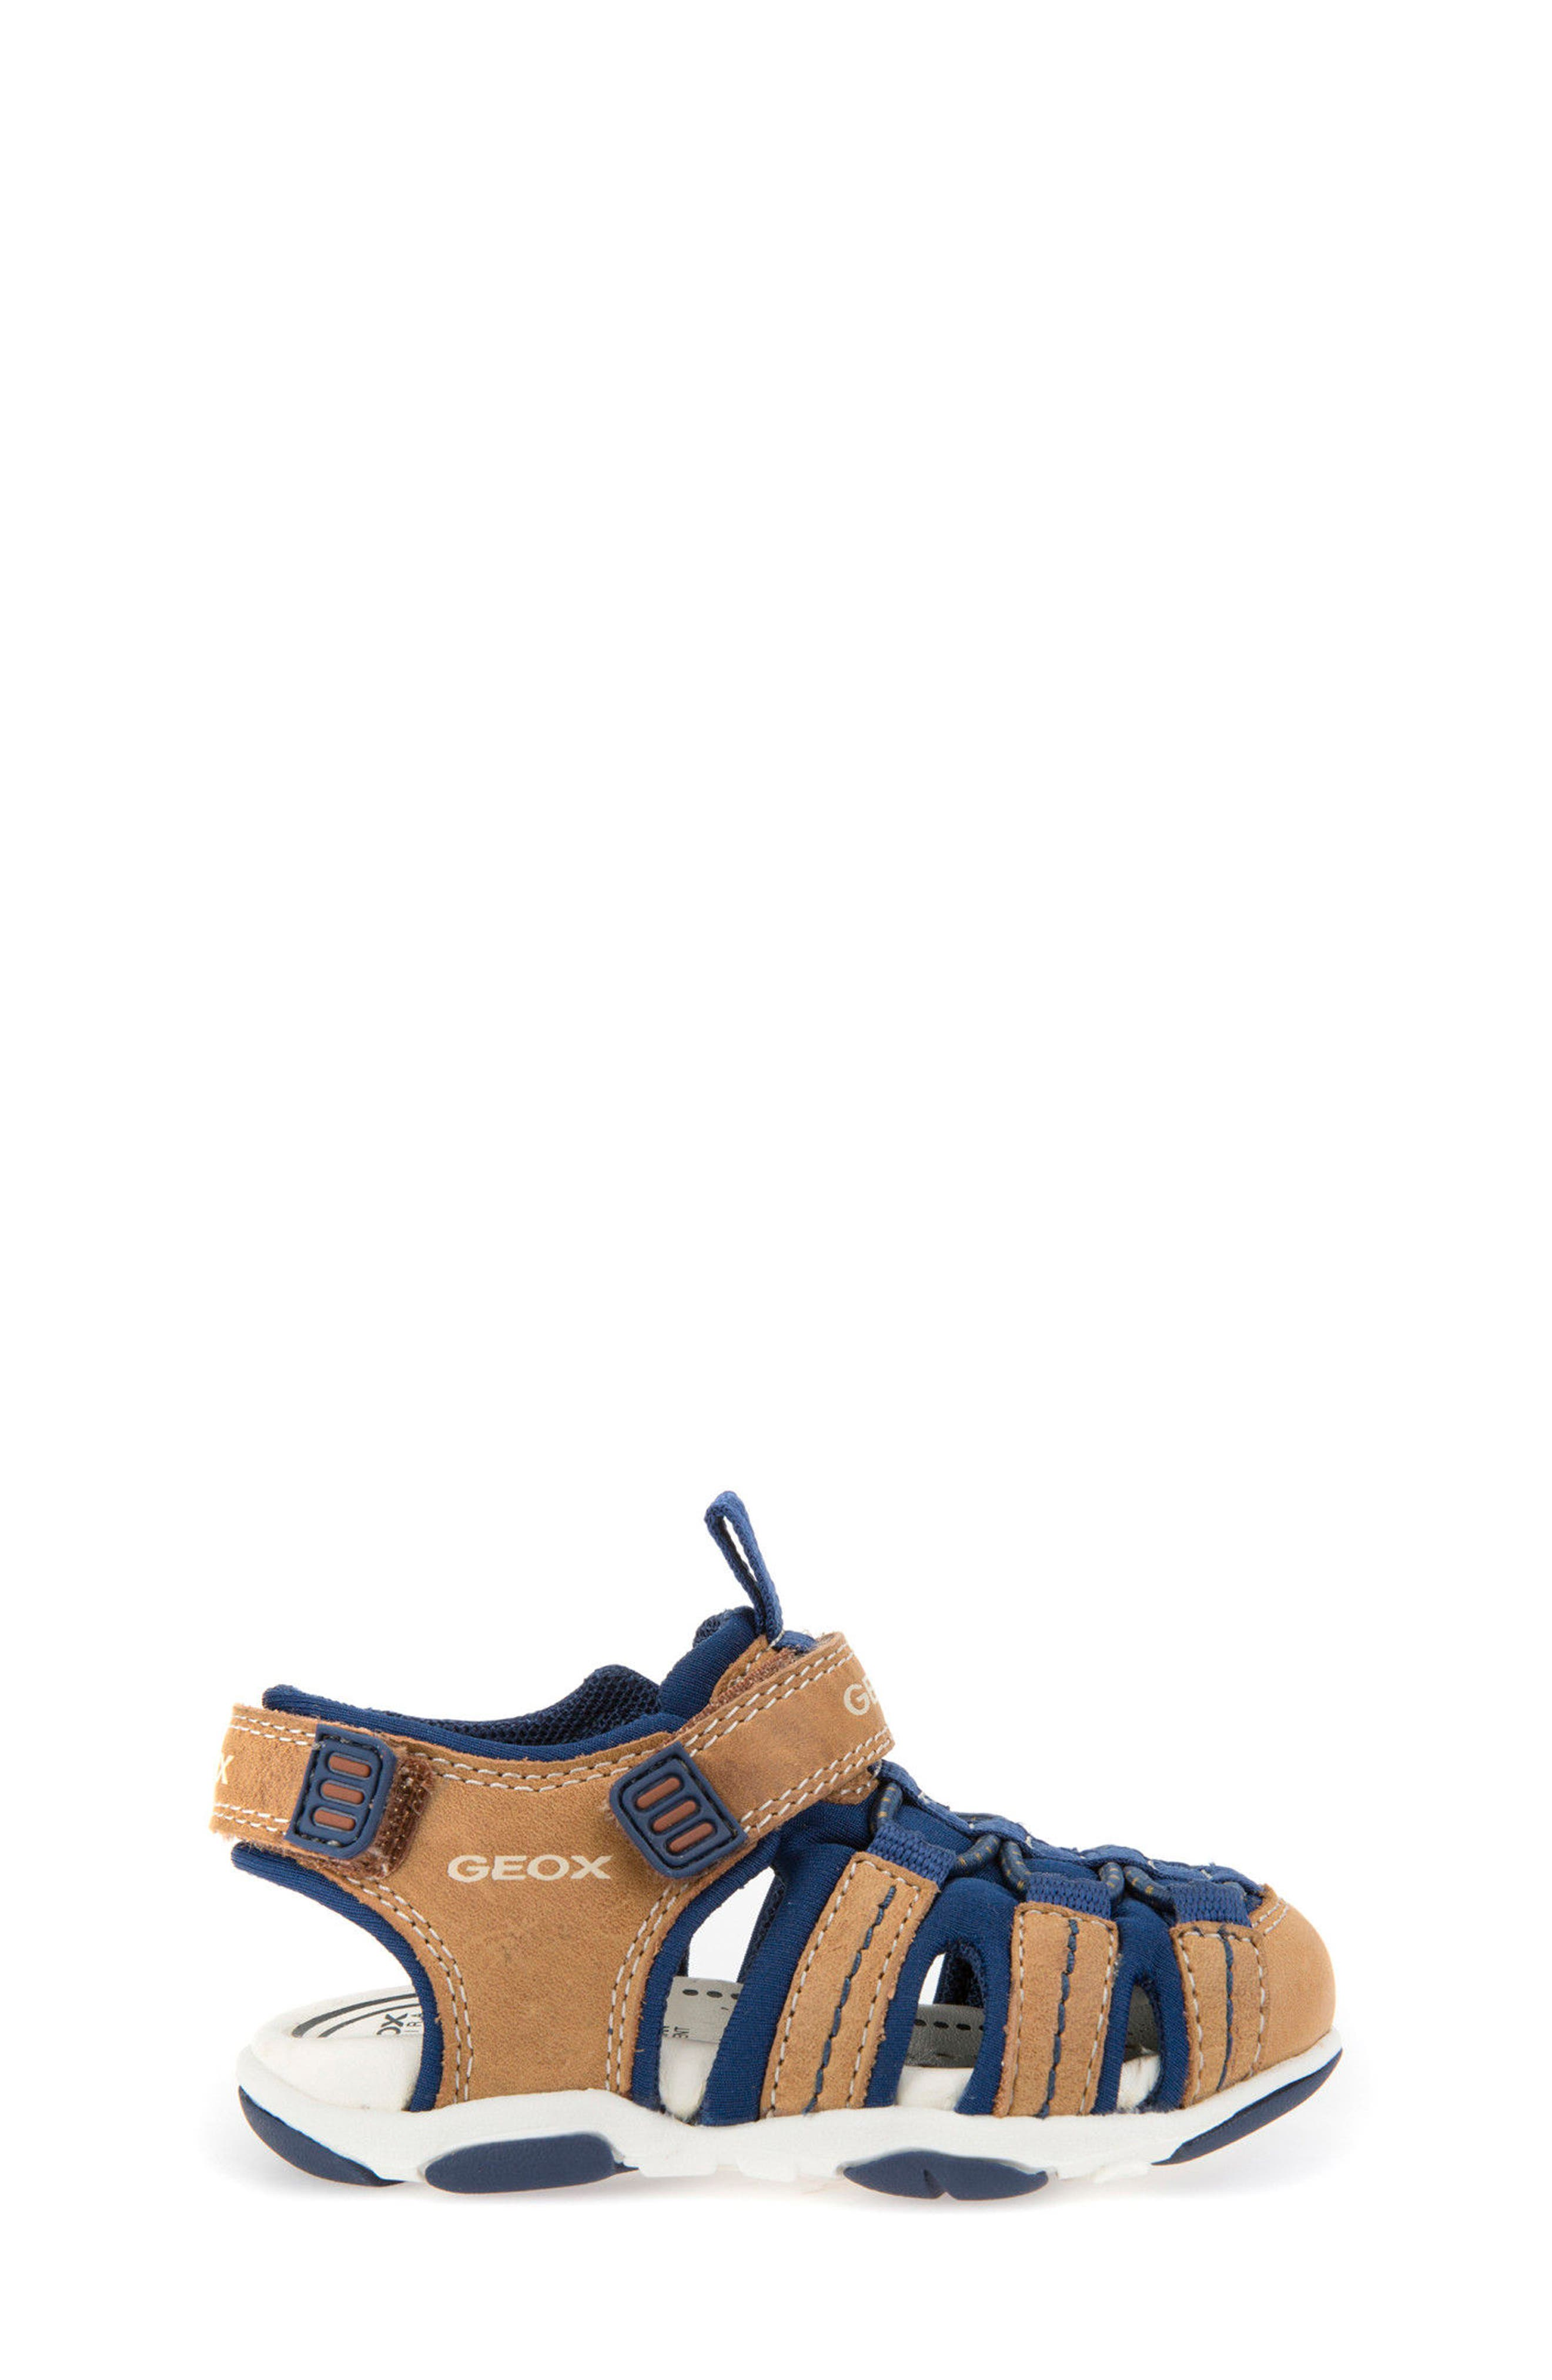 Agasim Fisherman Sandal,                             Alternate thumbnail 3, color,                             Caramel/ Navy